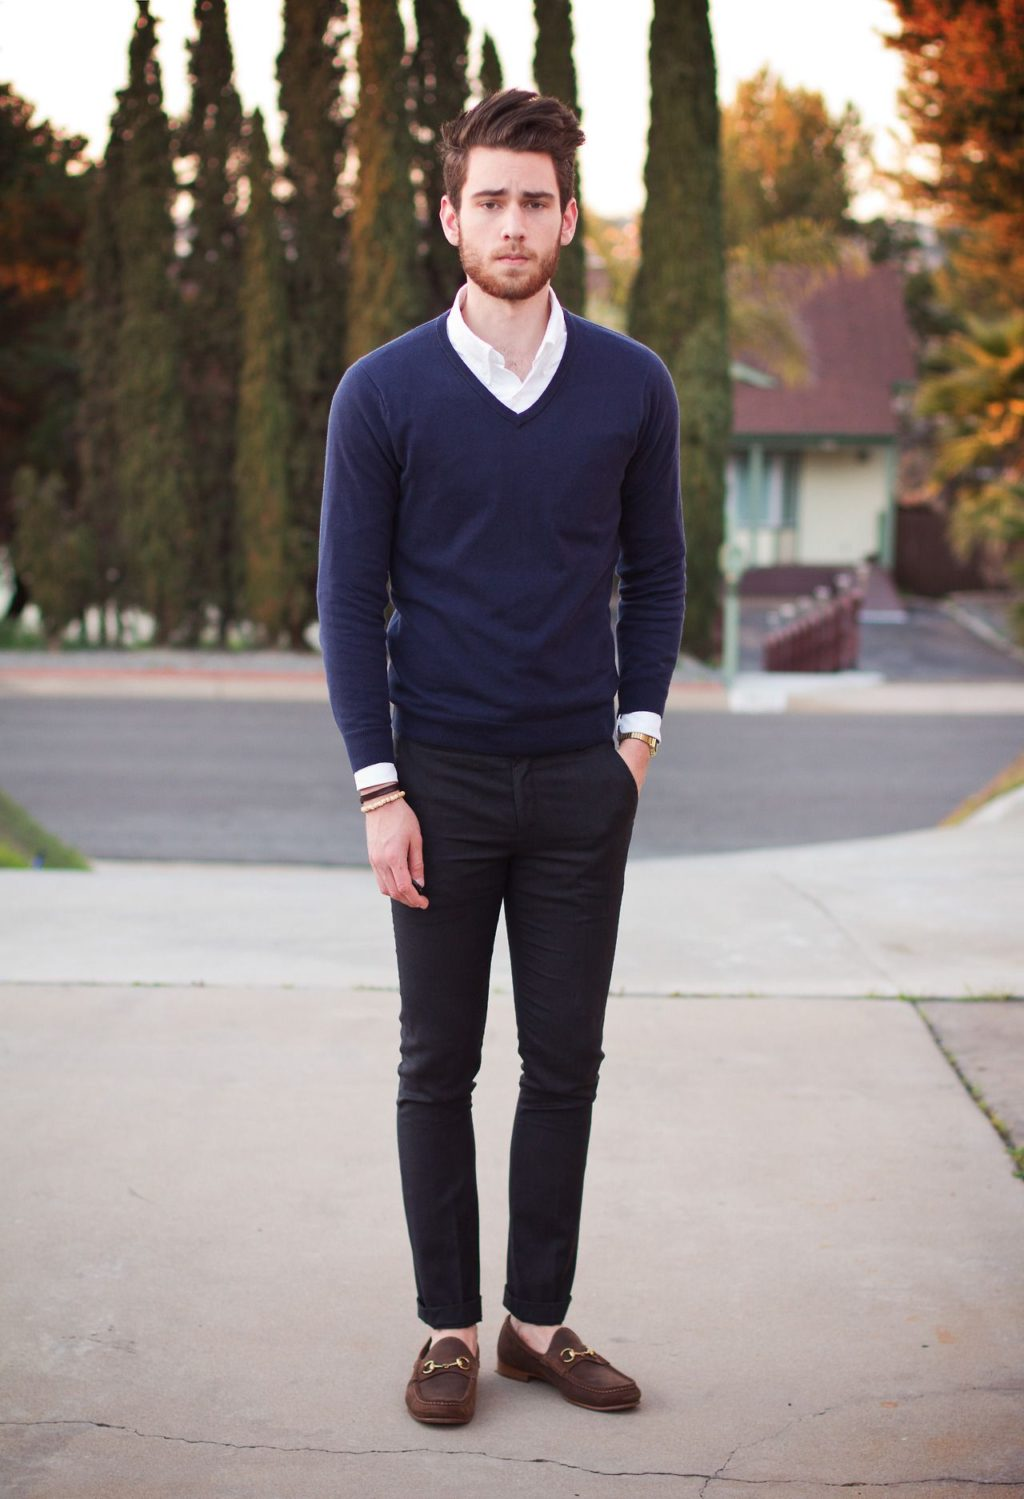 Sweater-and-long-sleeve-button-down-2-1024x1499 120+ Fashion Trends and Looks for College Students in 2020/2021